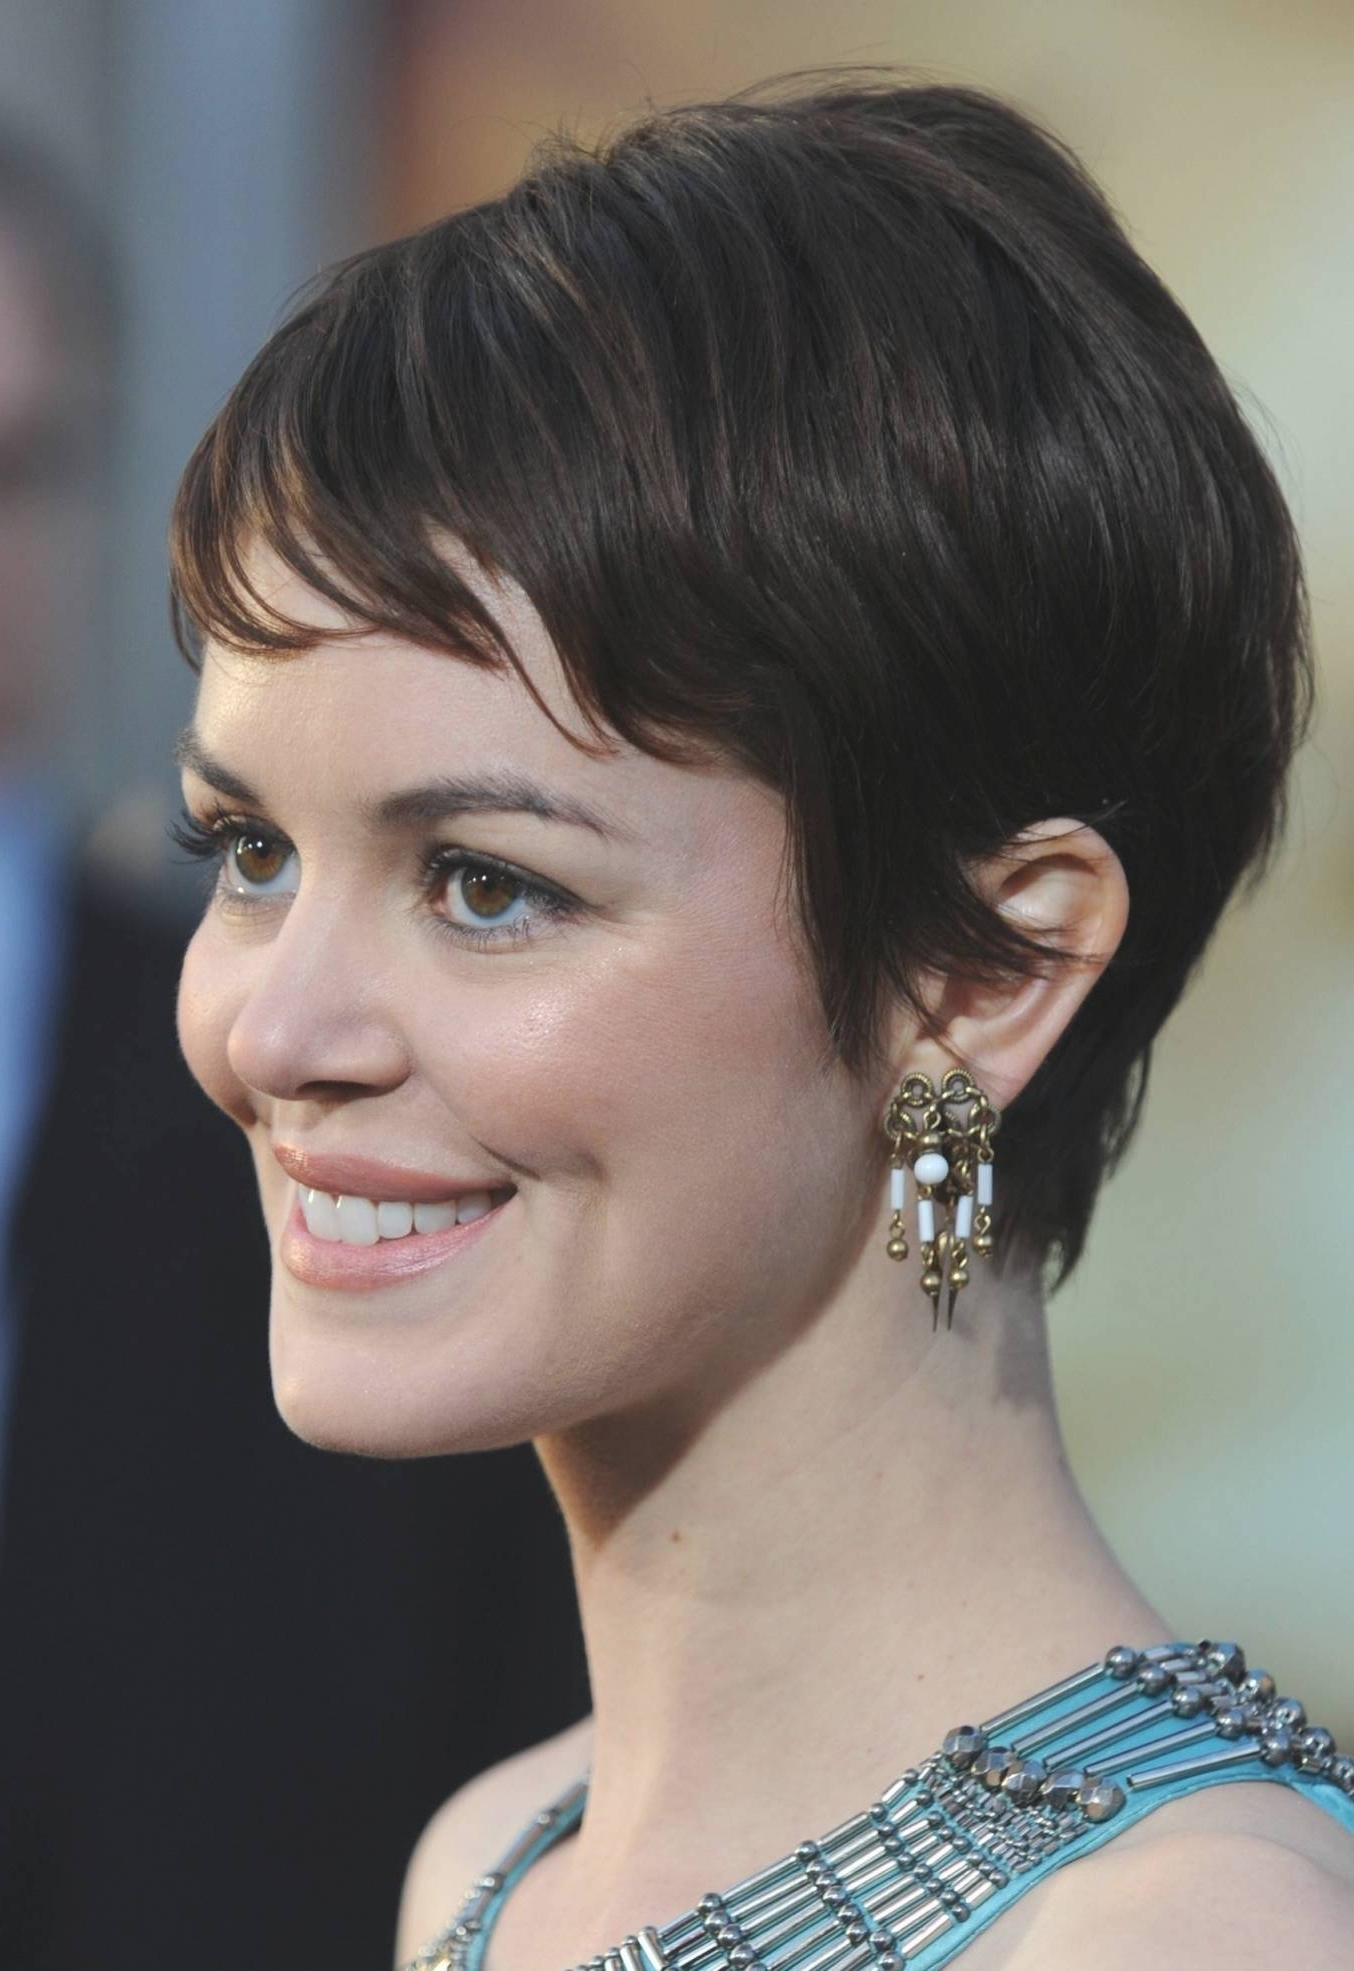 Wavy Pixie Hairstyles Short Wavy Pixie Hairstyles – Hairstyle Fo? With Regard To Most Current Wavy Pixie Hairstyles (View 6 of 15)